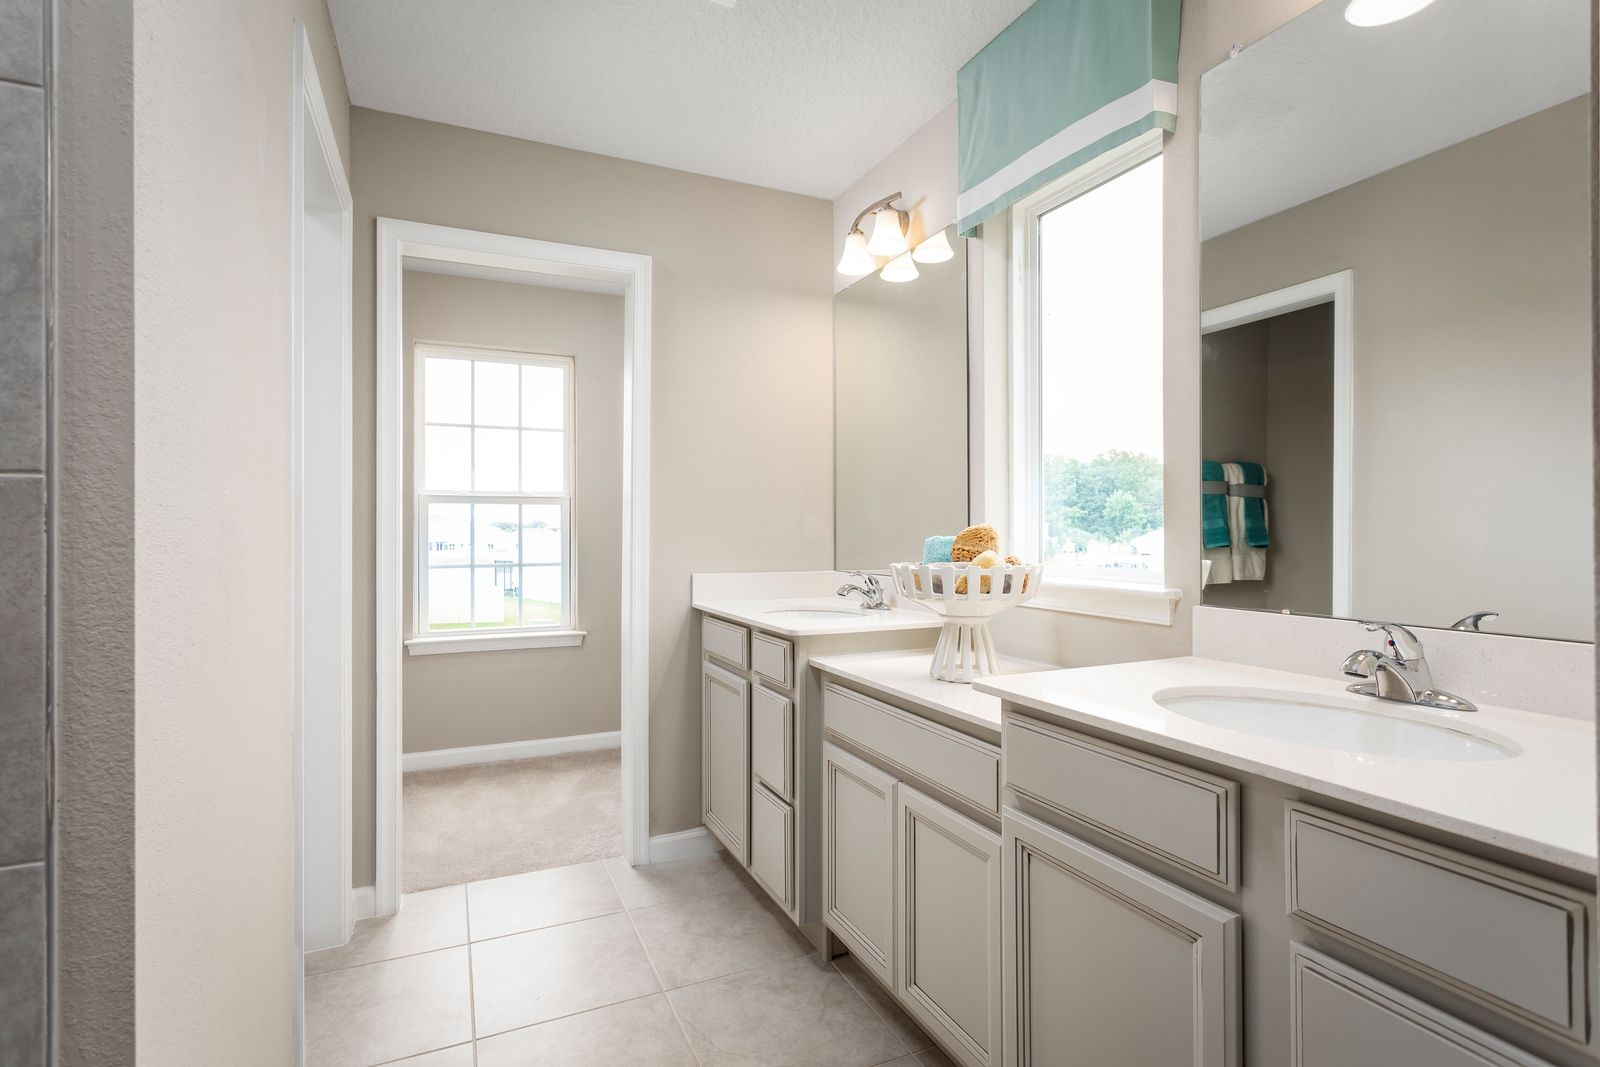 Bathroom featured in the Hillcrest By Ryan Homes in Orlando, FL